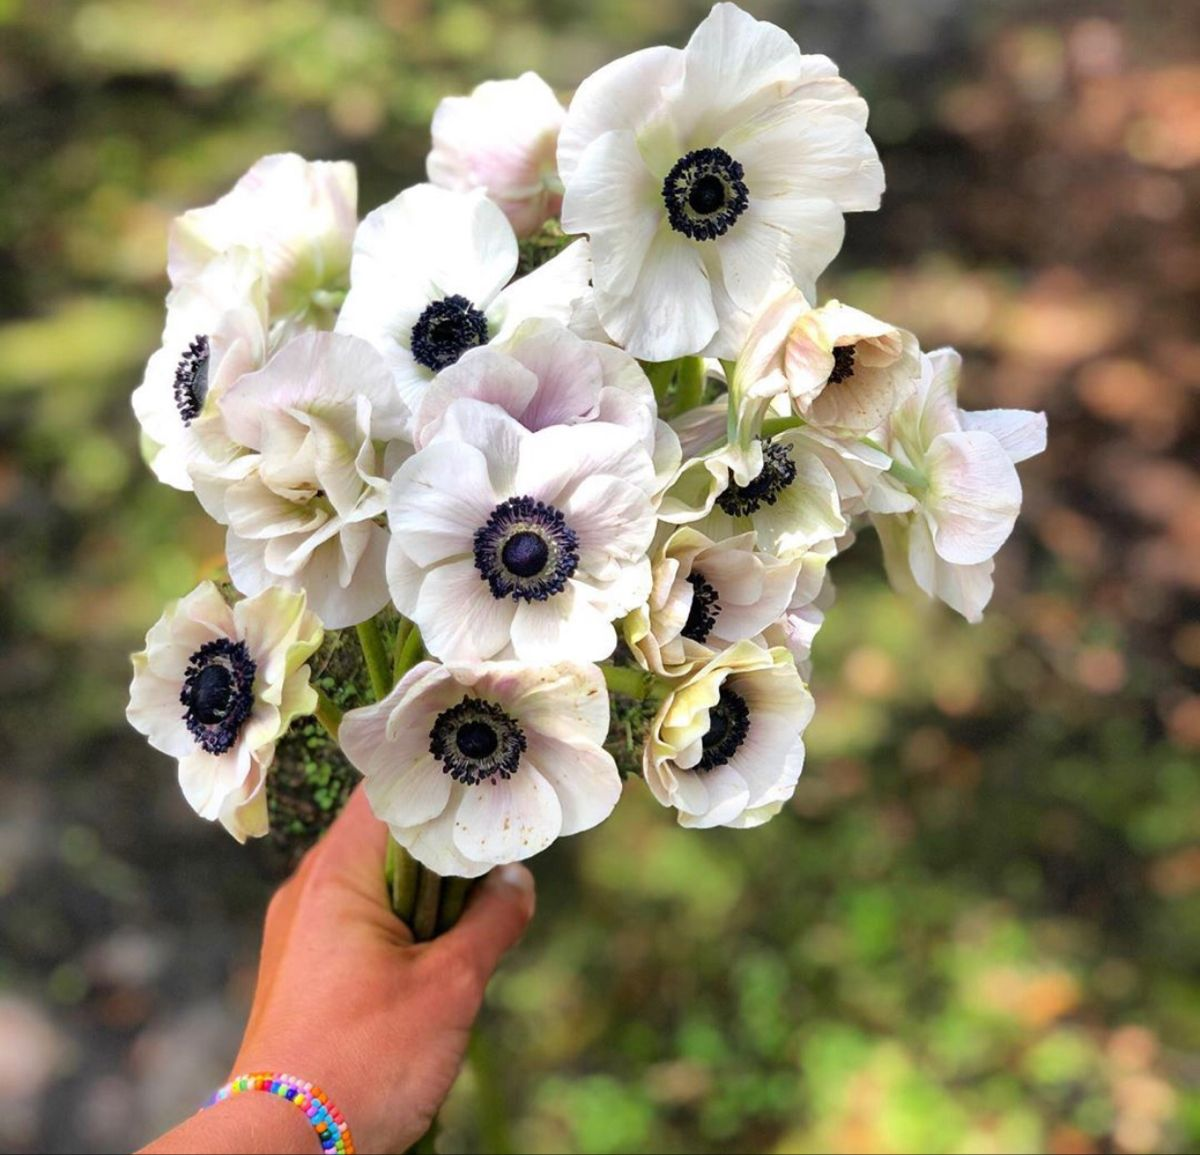 Anemone Flower In 2020 White Anemone Flower Anemone Flower Flowers For Sale